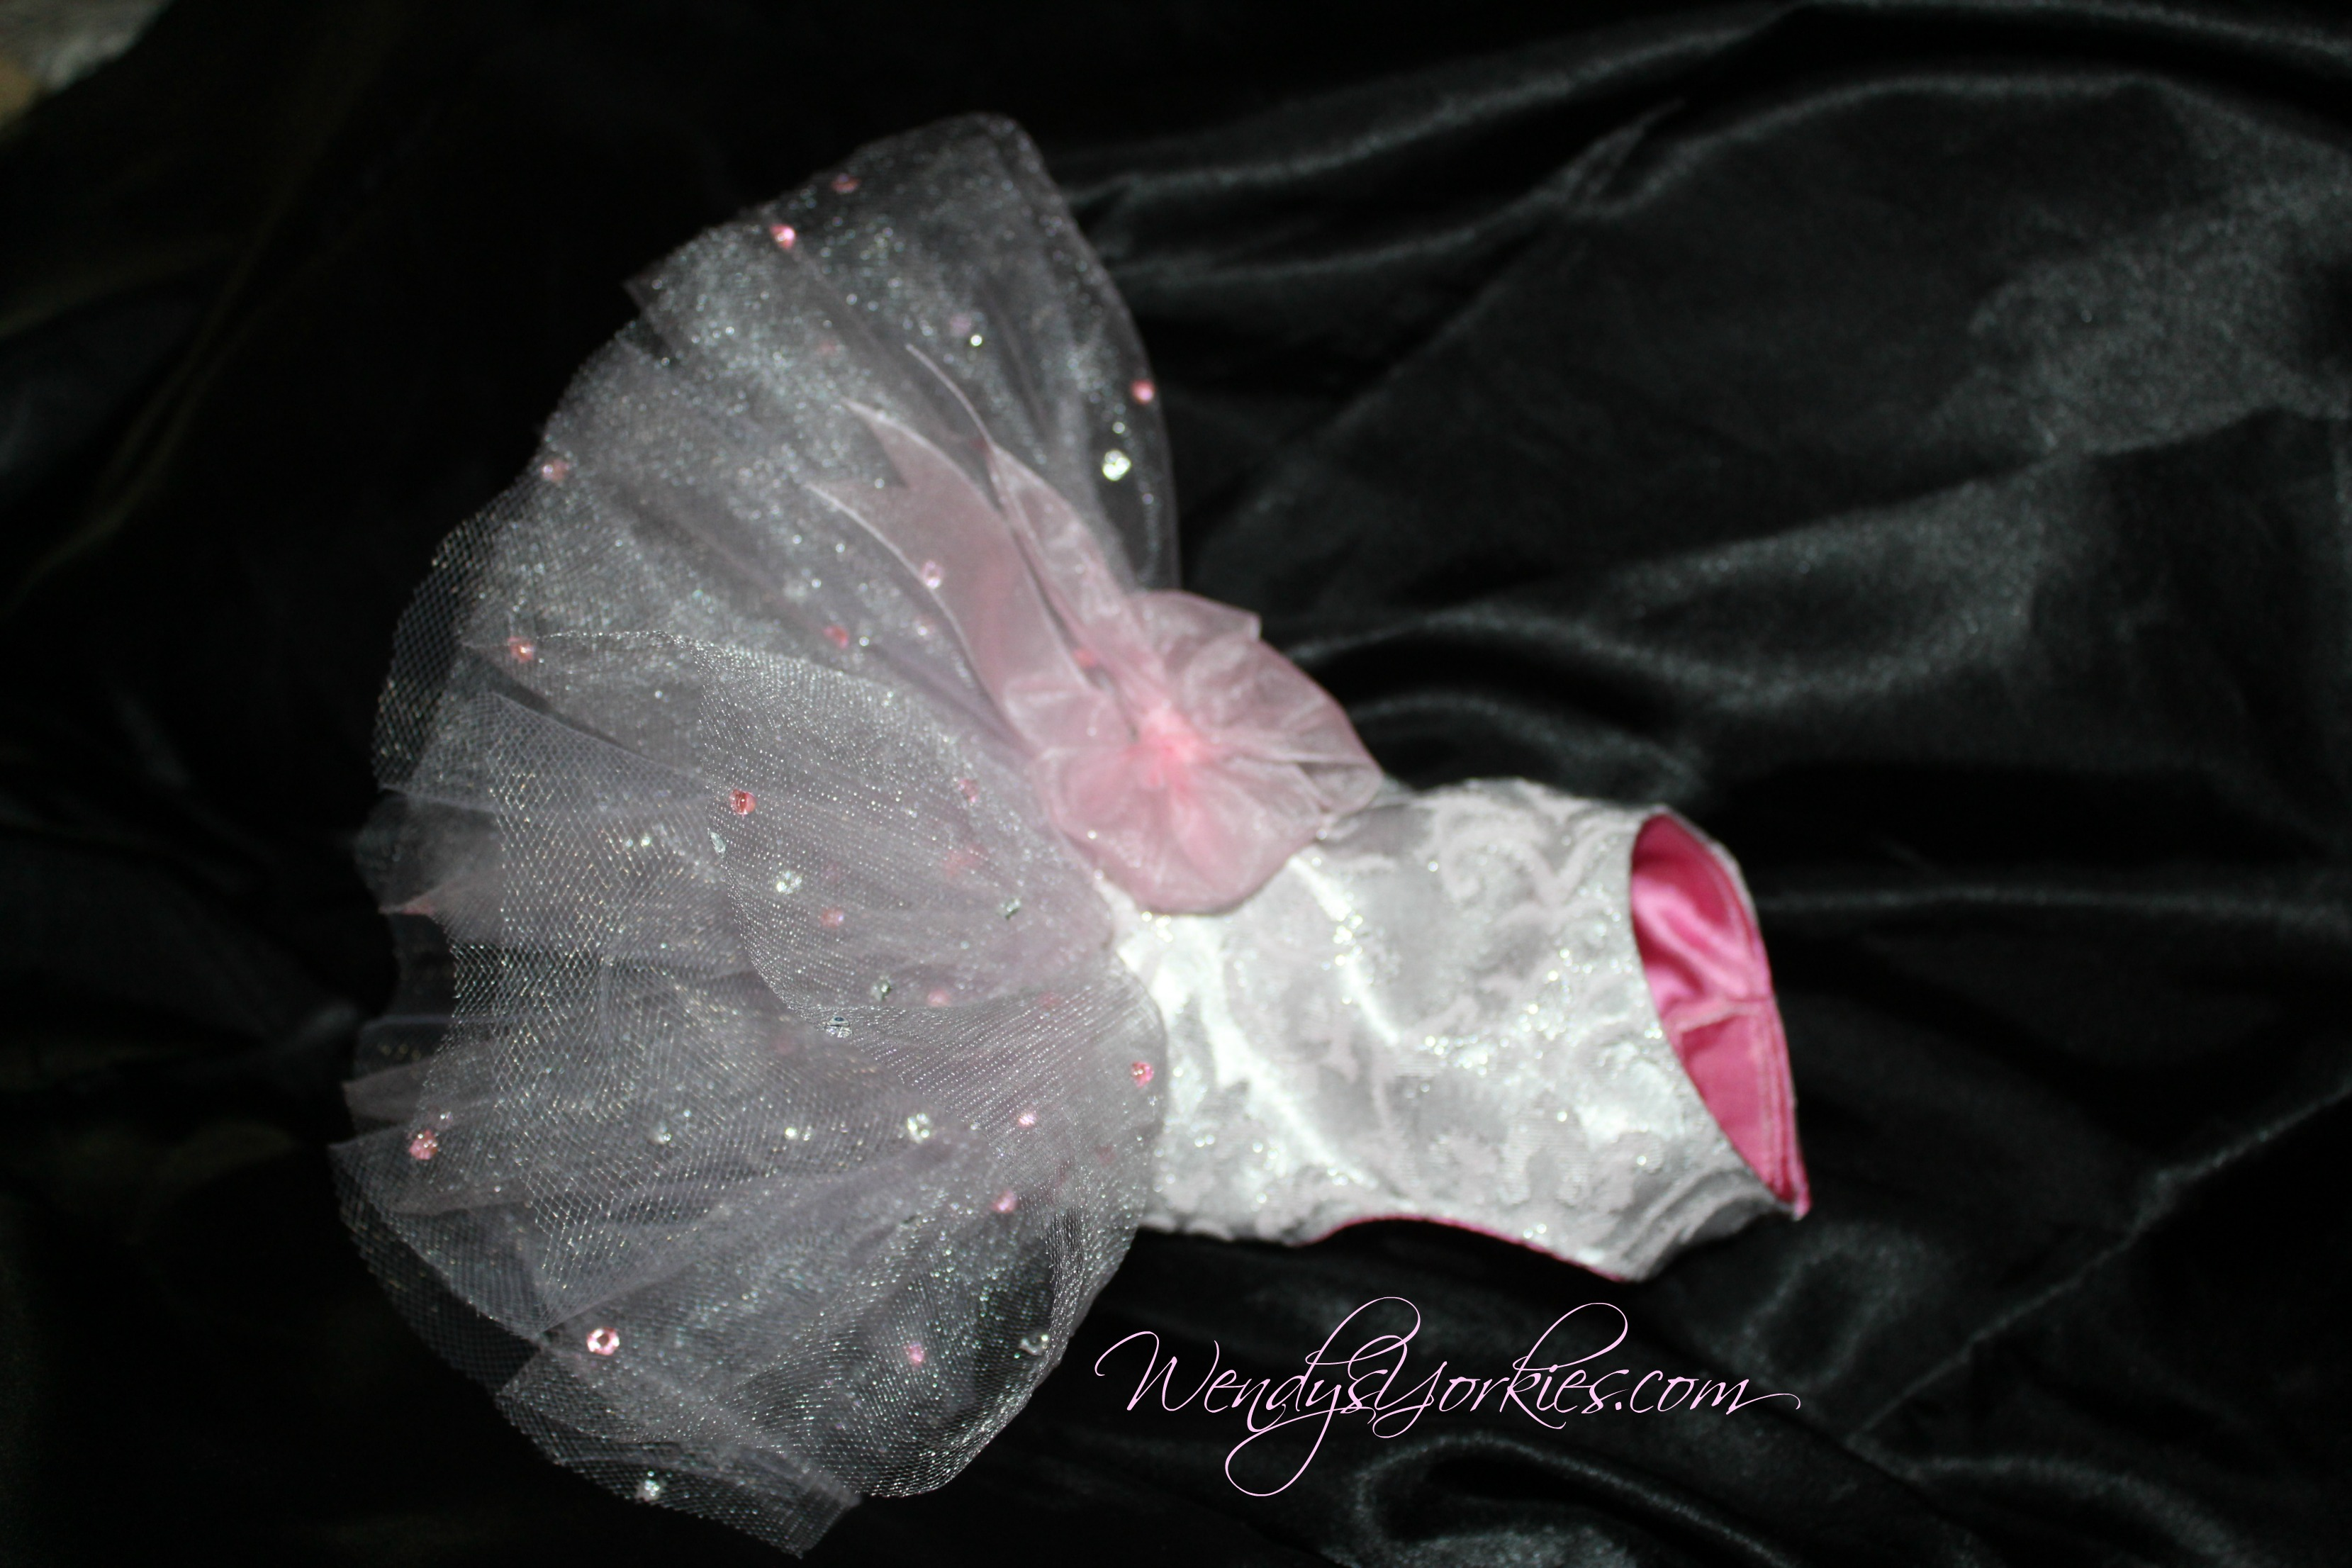 Pink Dog tutu dress, Tiny Dog clothes for sale, WendysYorkies.com